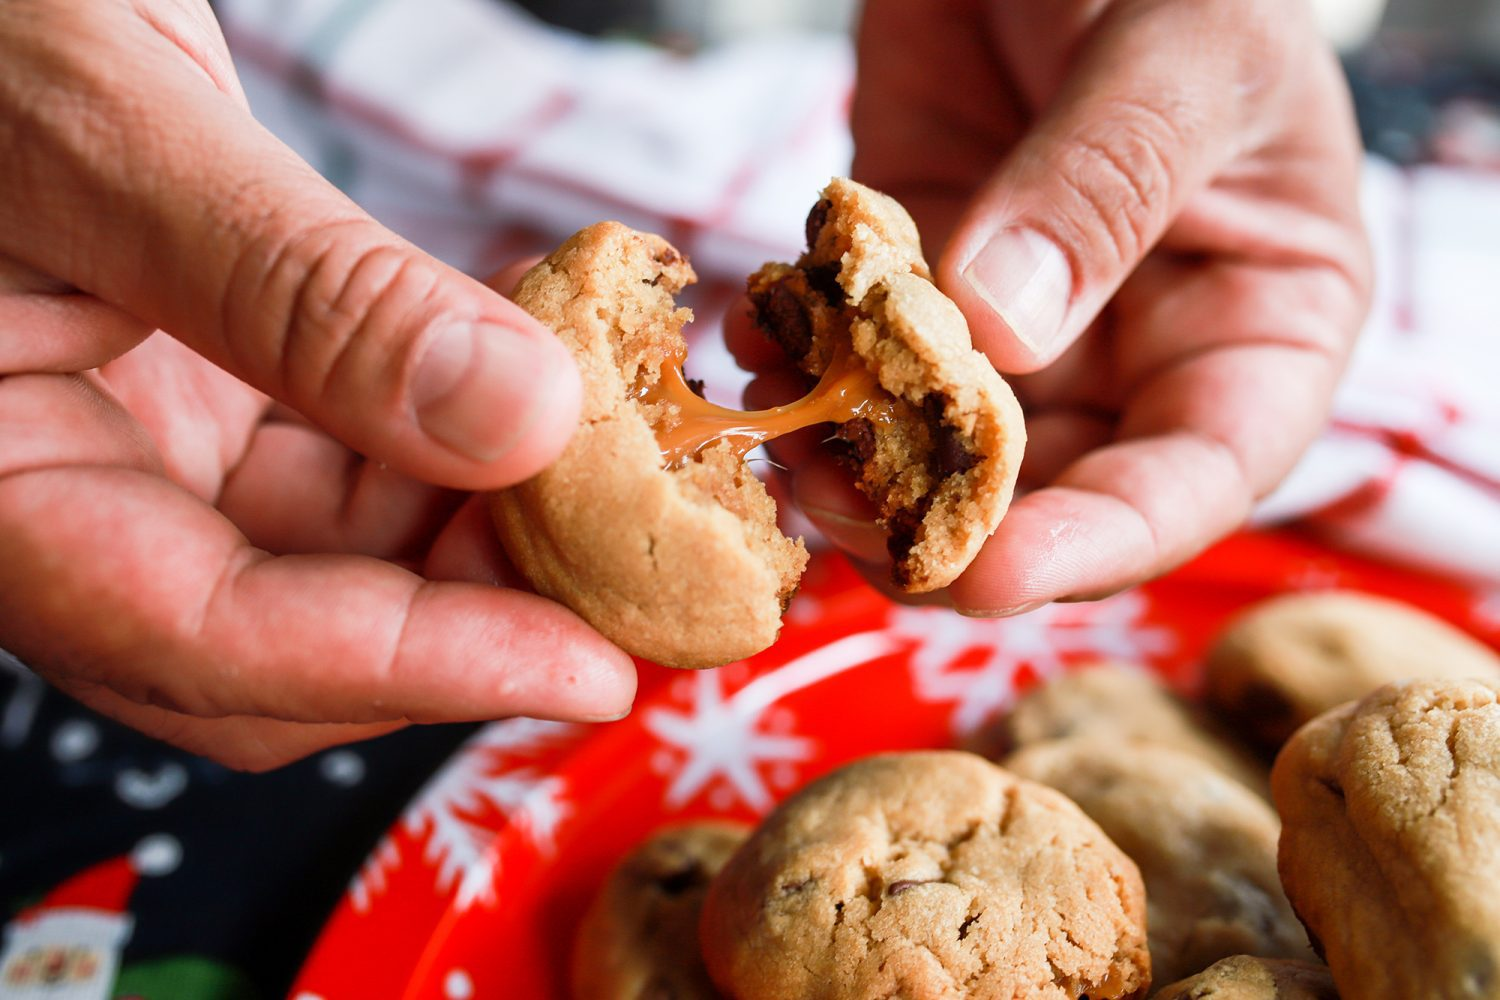 hands pulling apart a cookie filled with caramel